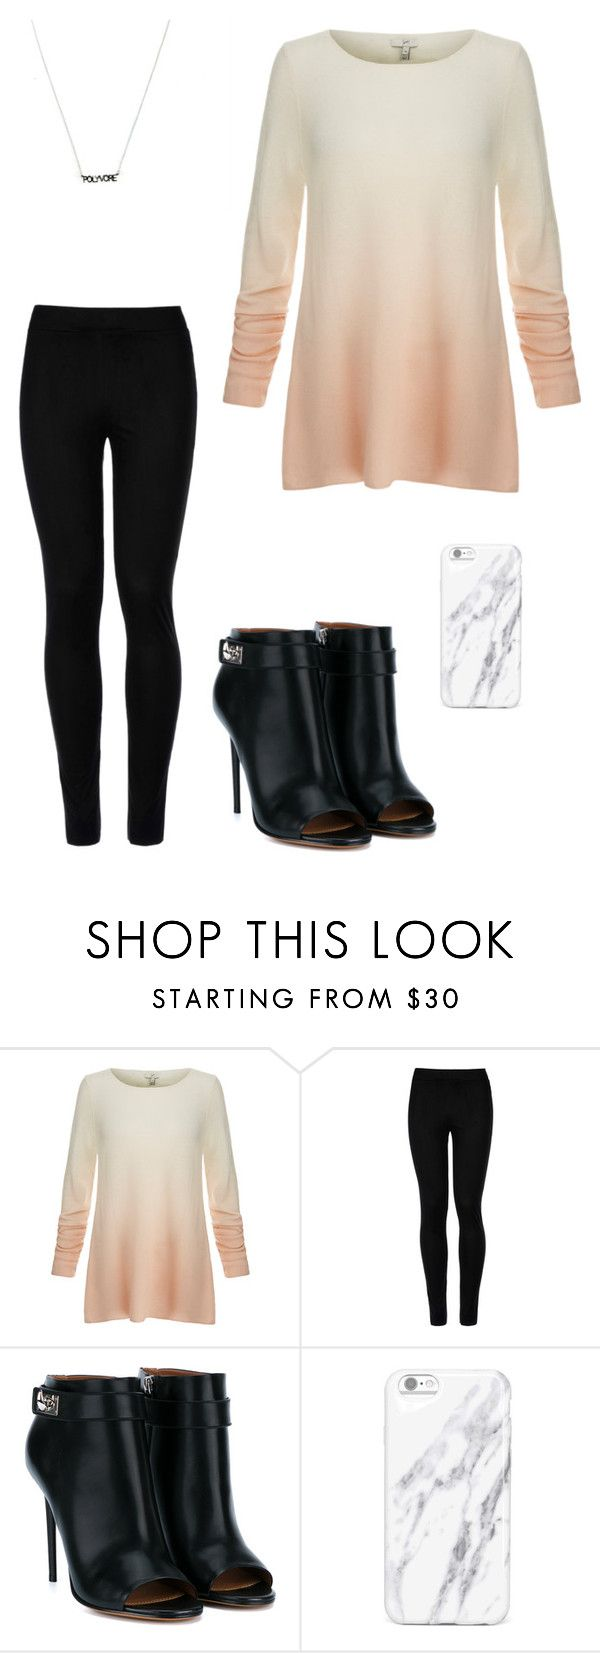 """""""Contest Entry #PVStyleInsiderContest"""" by hailey-massengale ❤ liked on Polyvore featuring Joie, Wolford, Givenchy, contestentry and styleinsider"""